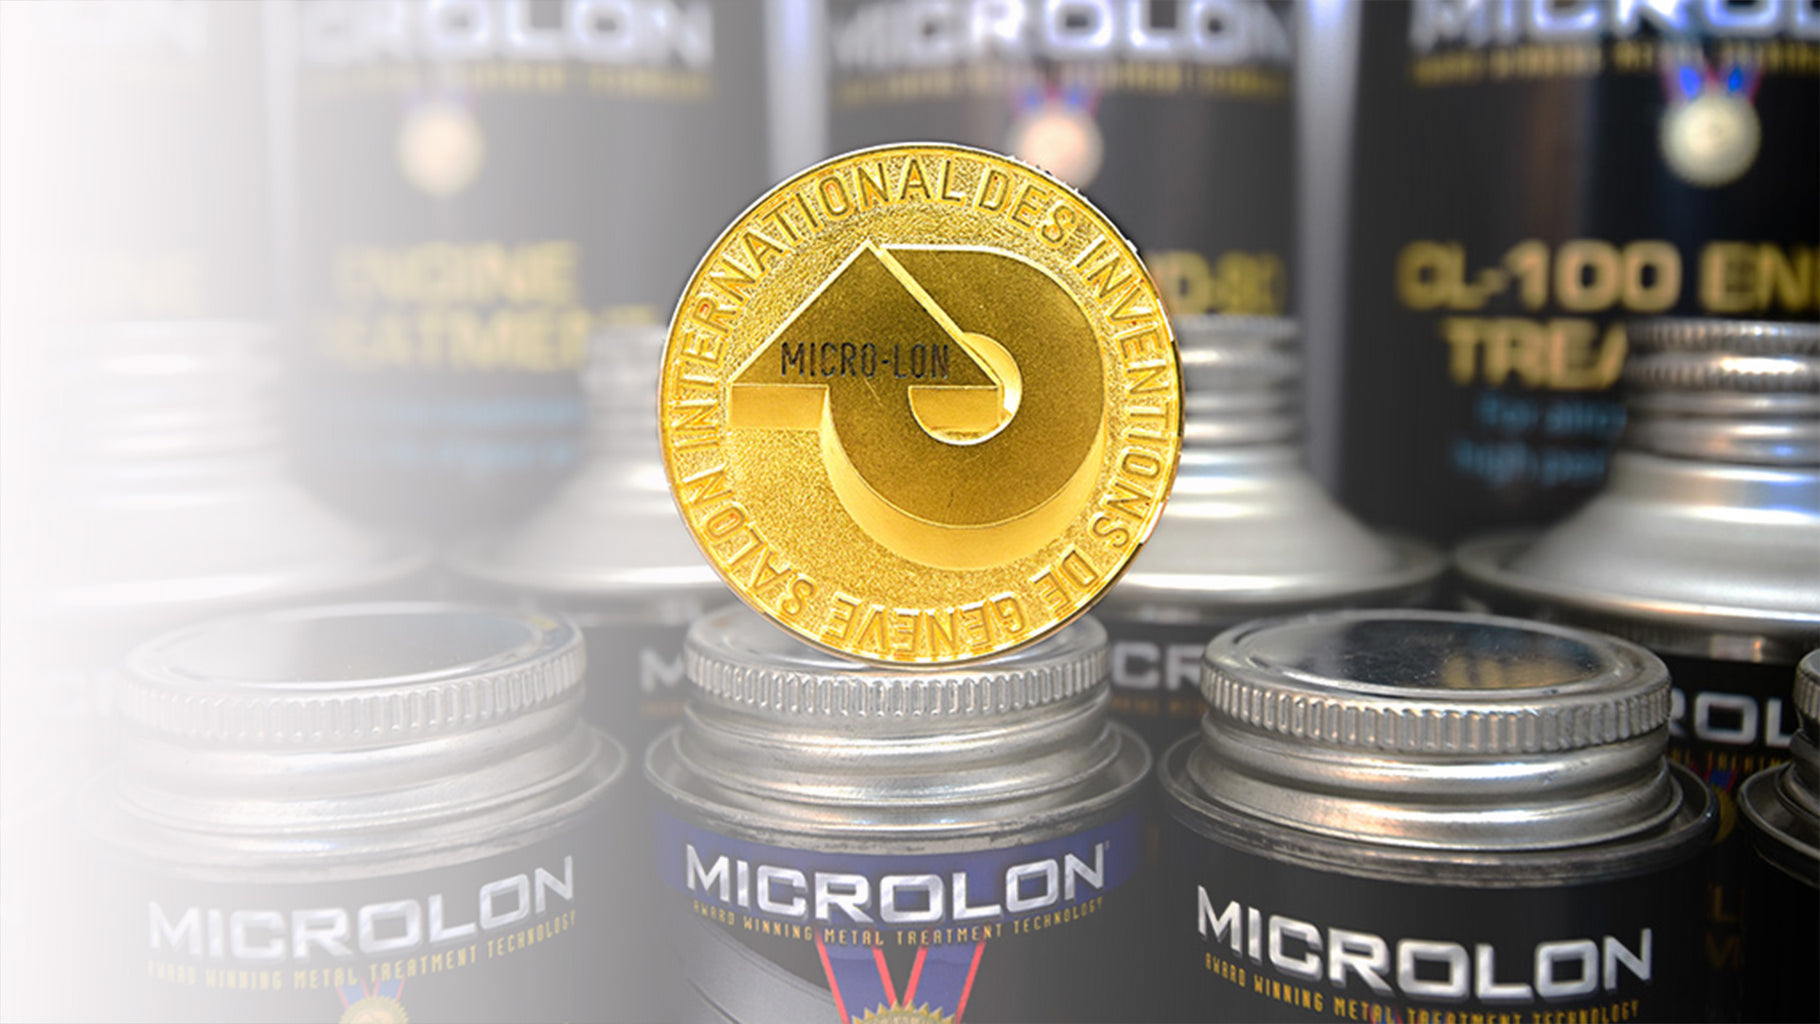 Microlon Award Winning Metal Treatment Technology